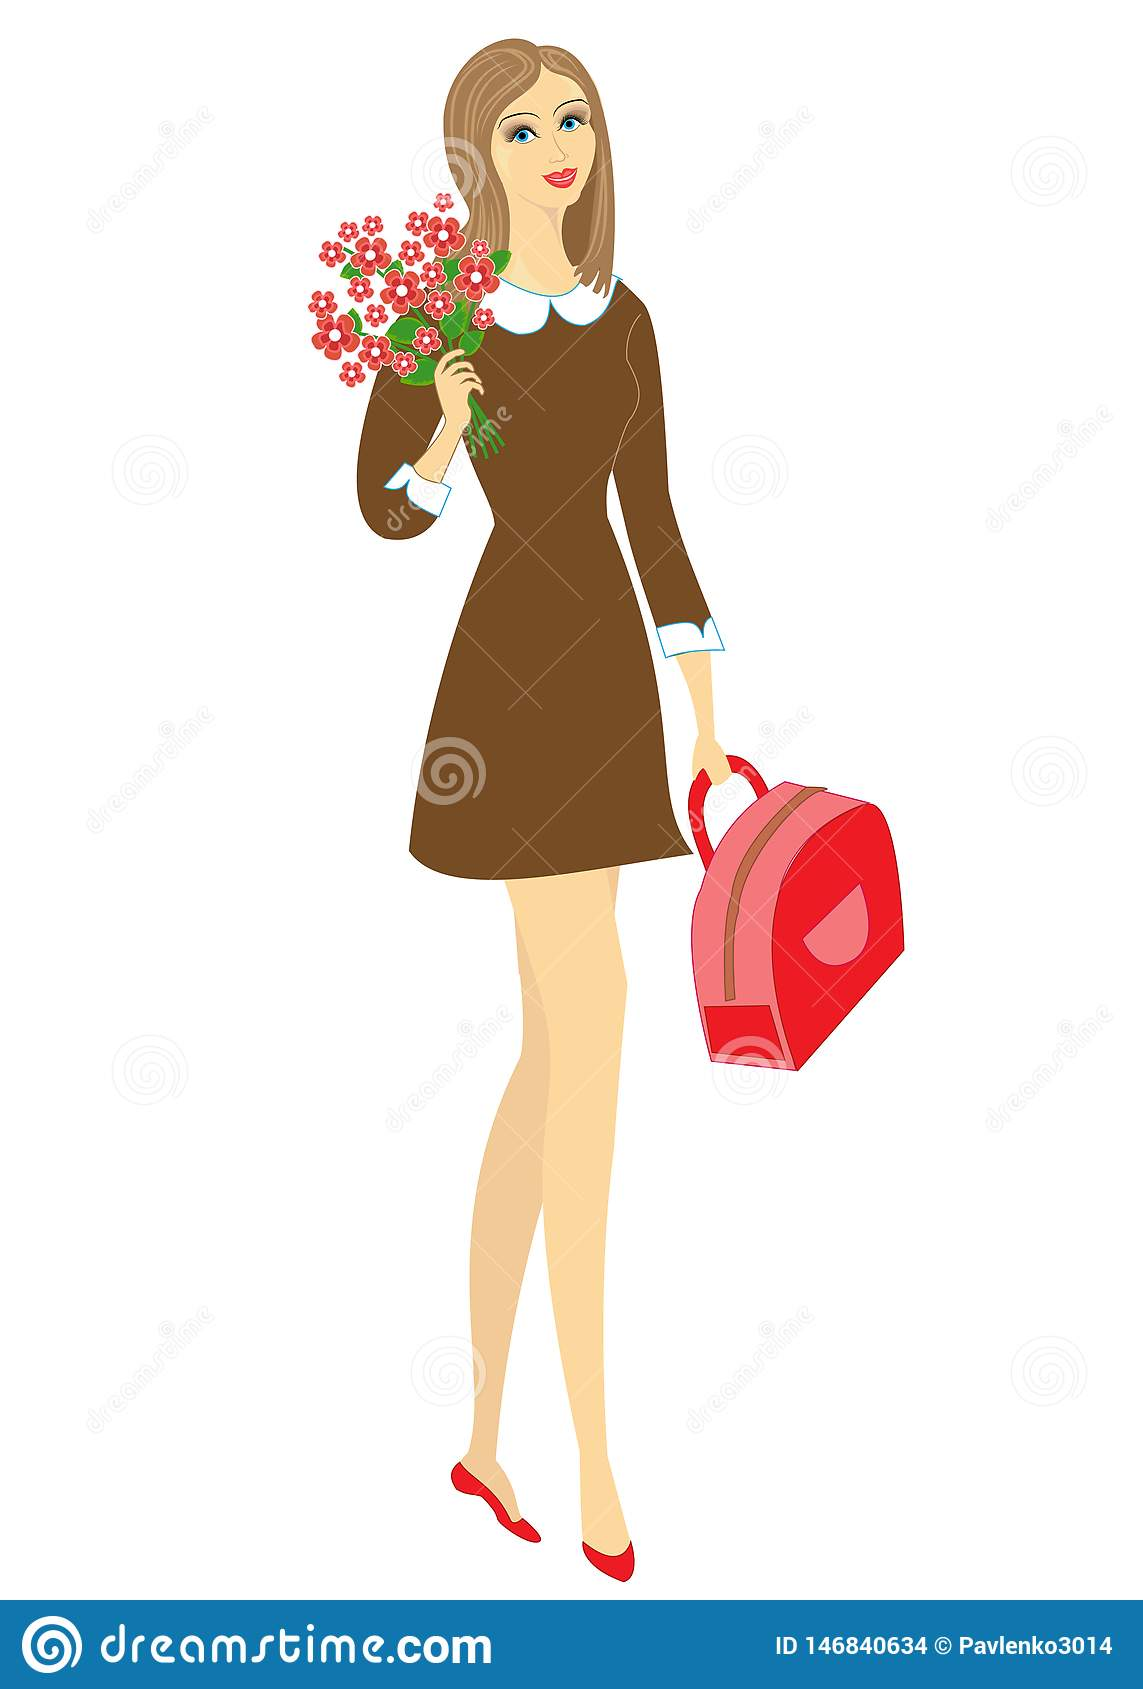 Young schoolgirl with flowers. The girl is very nice, she has a good mood, a smile. The lady will give the bouquet to the teacher